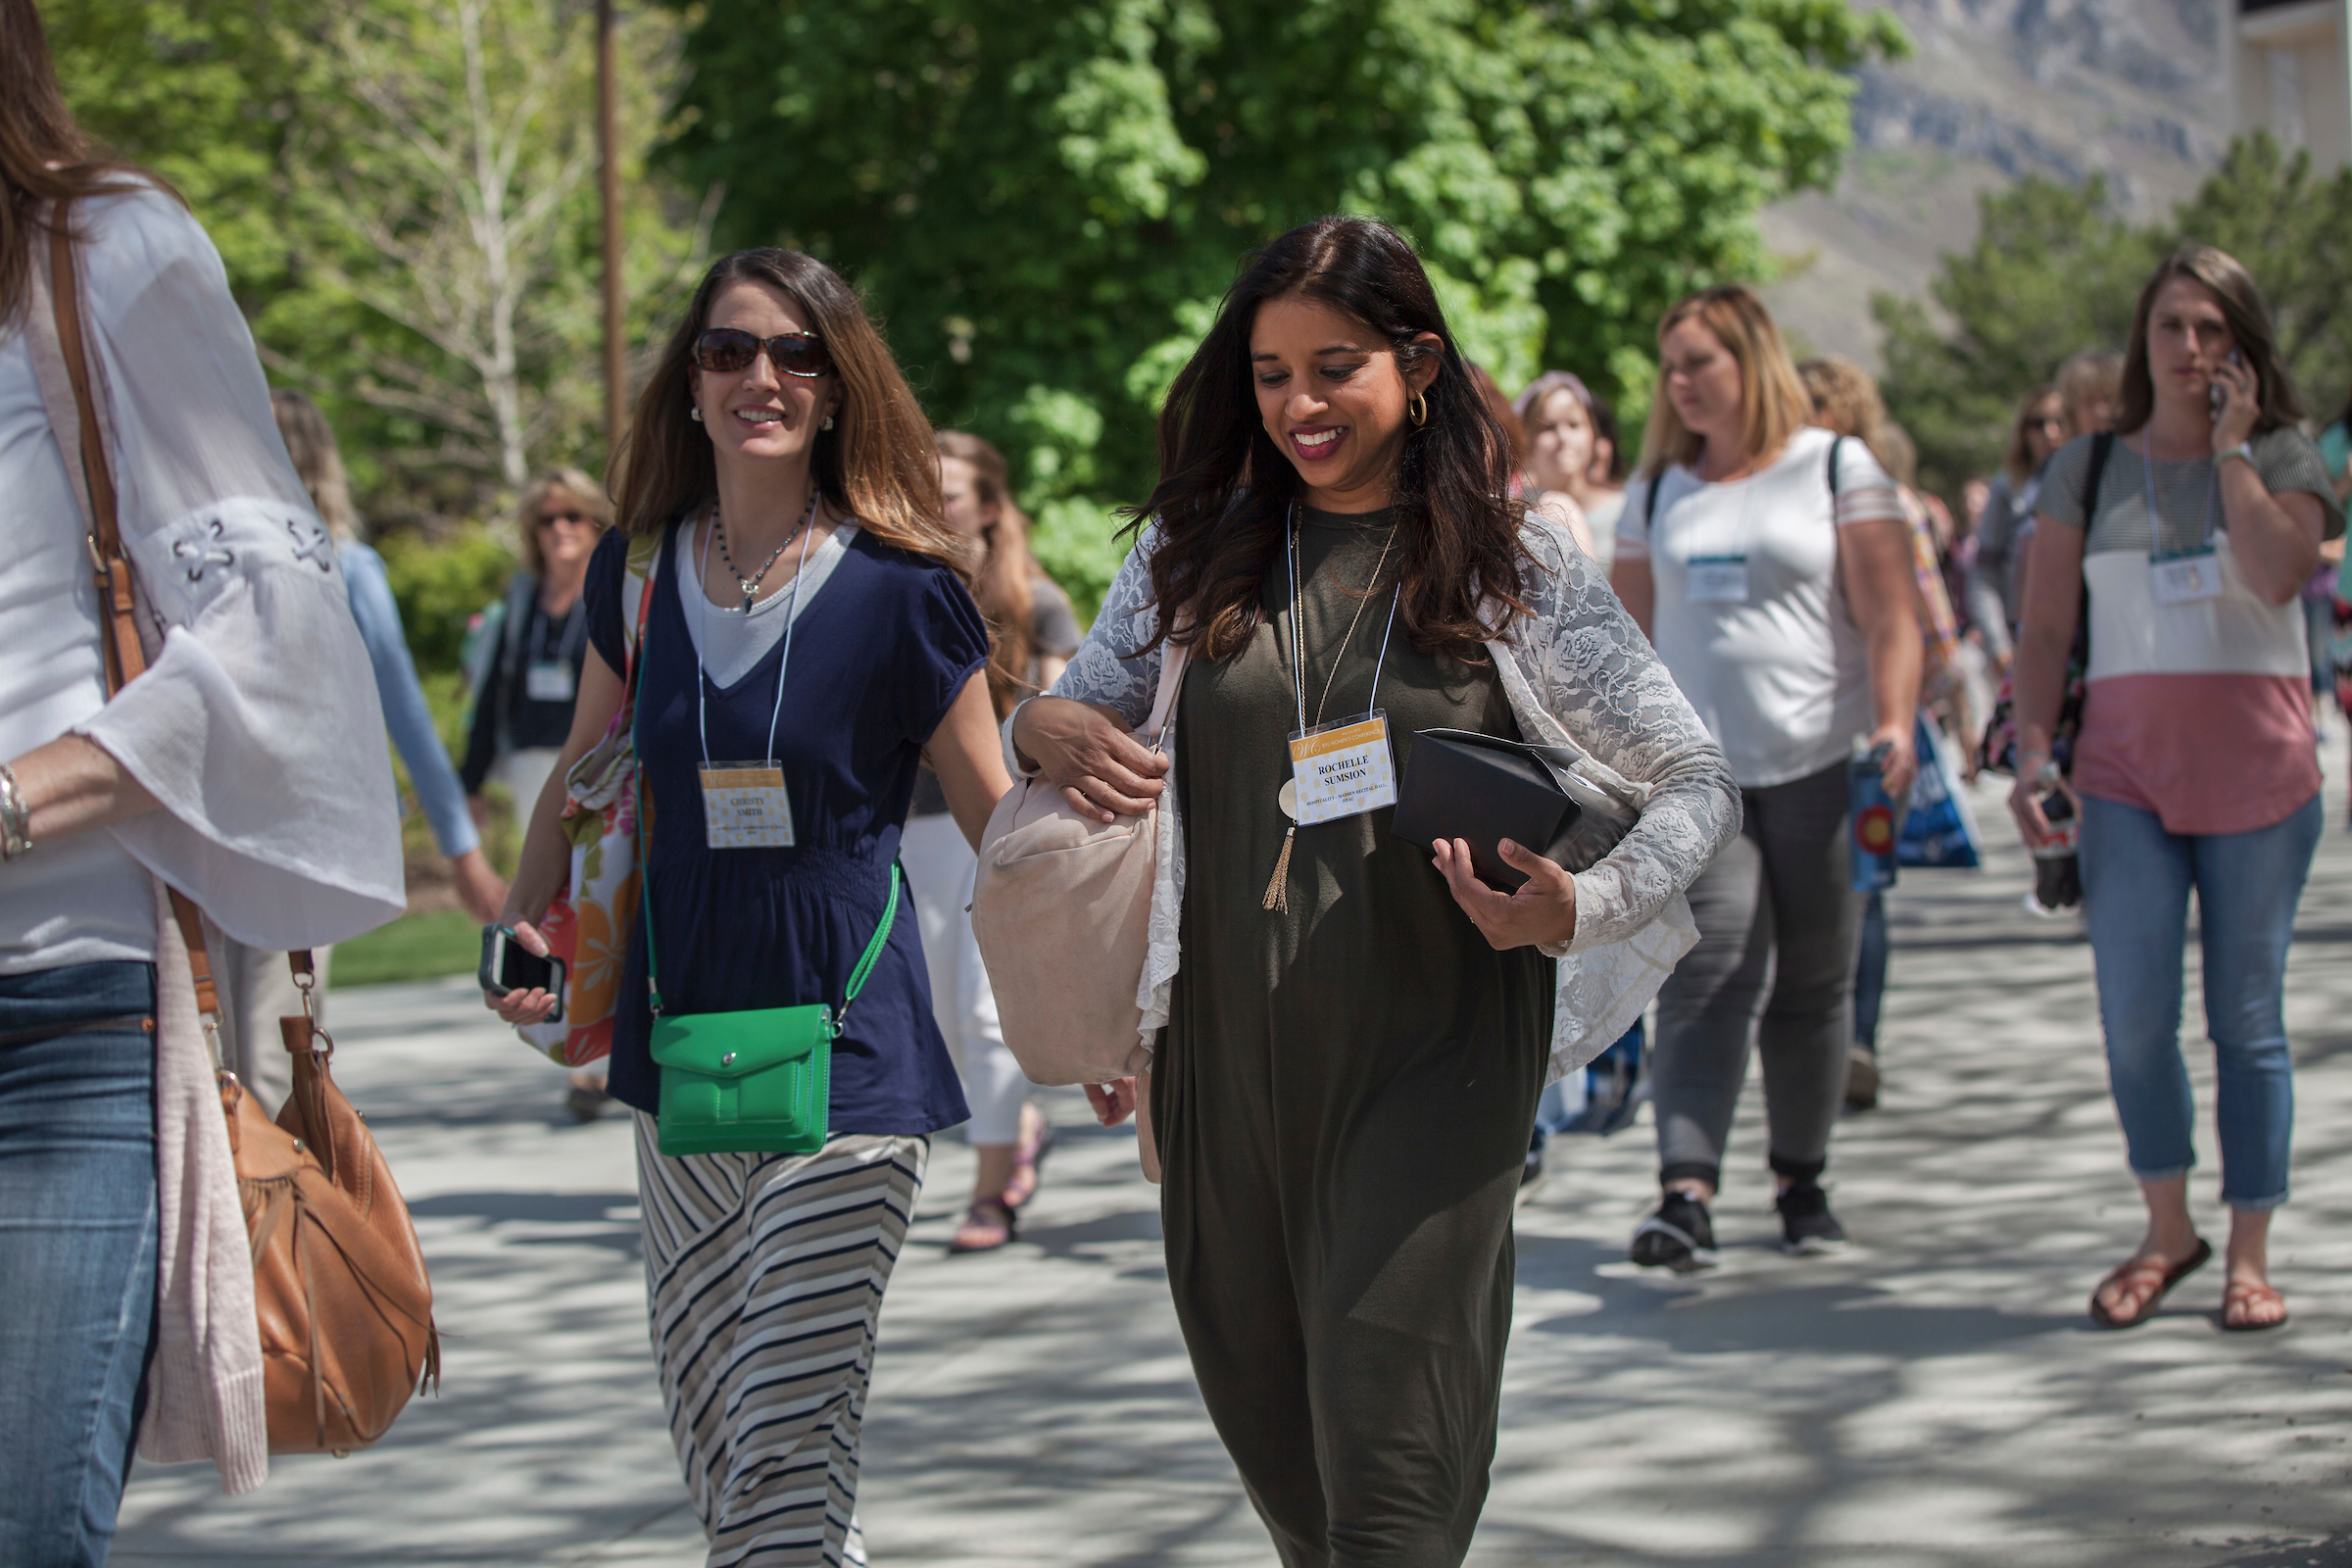 Attendees walk across BYU campus in Provo, Utah, during the annual BYU Women's Conference held May 3-4, 2018.